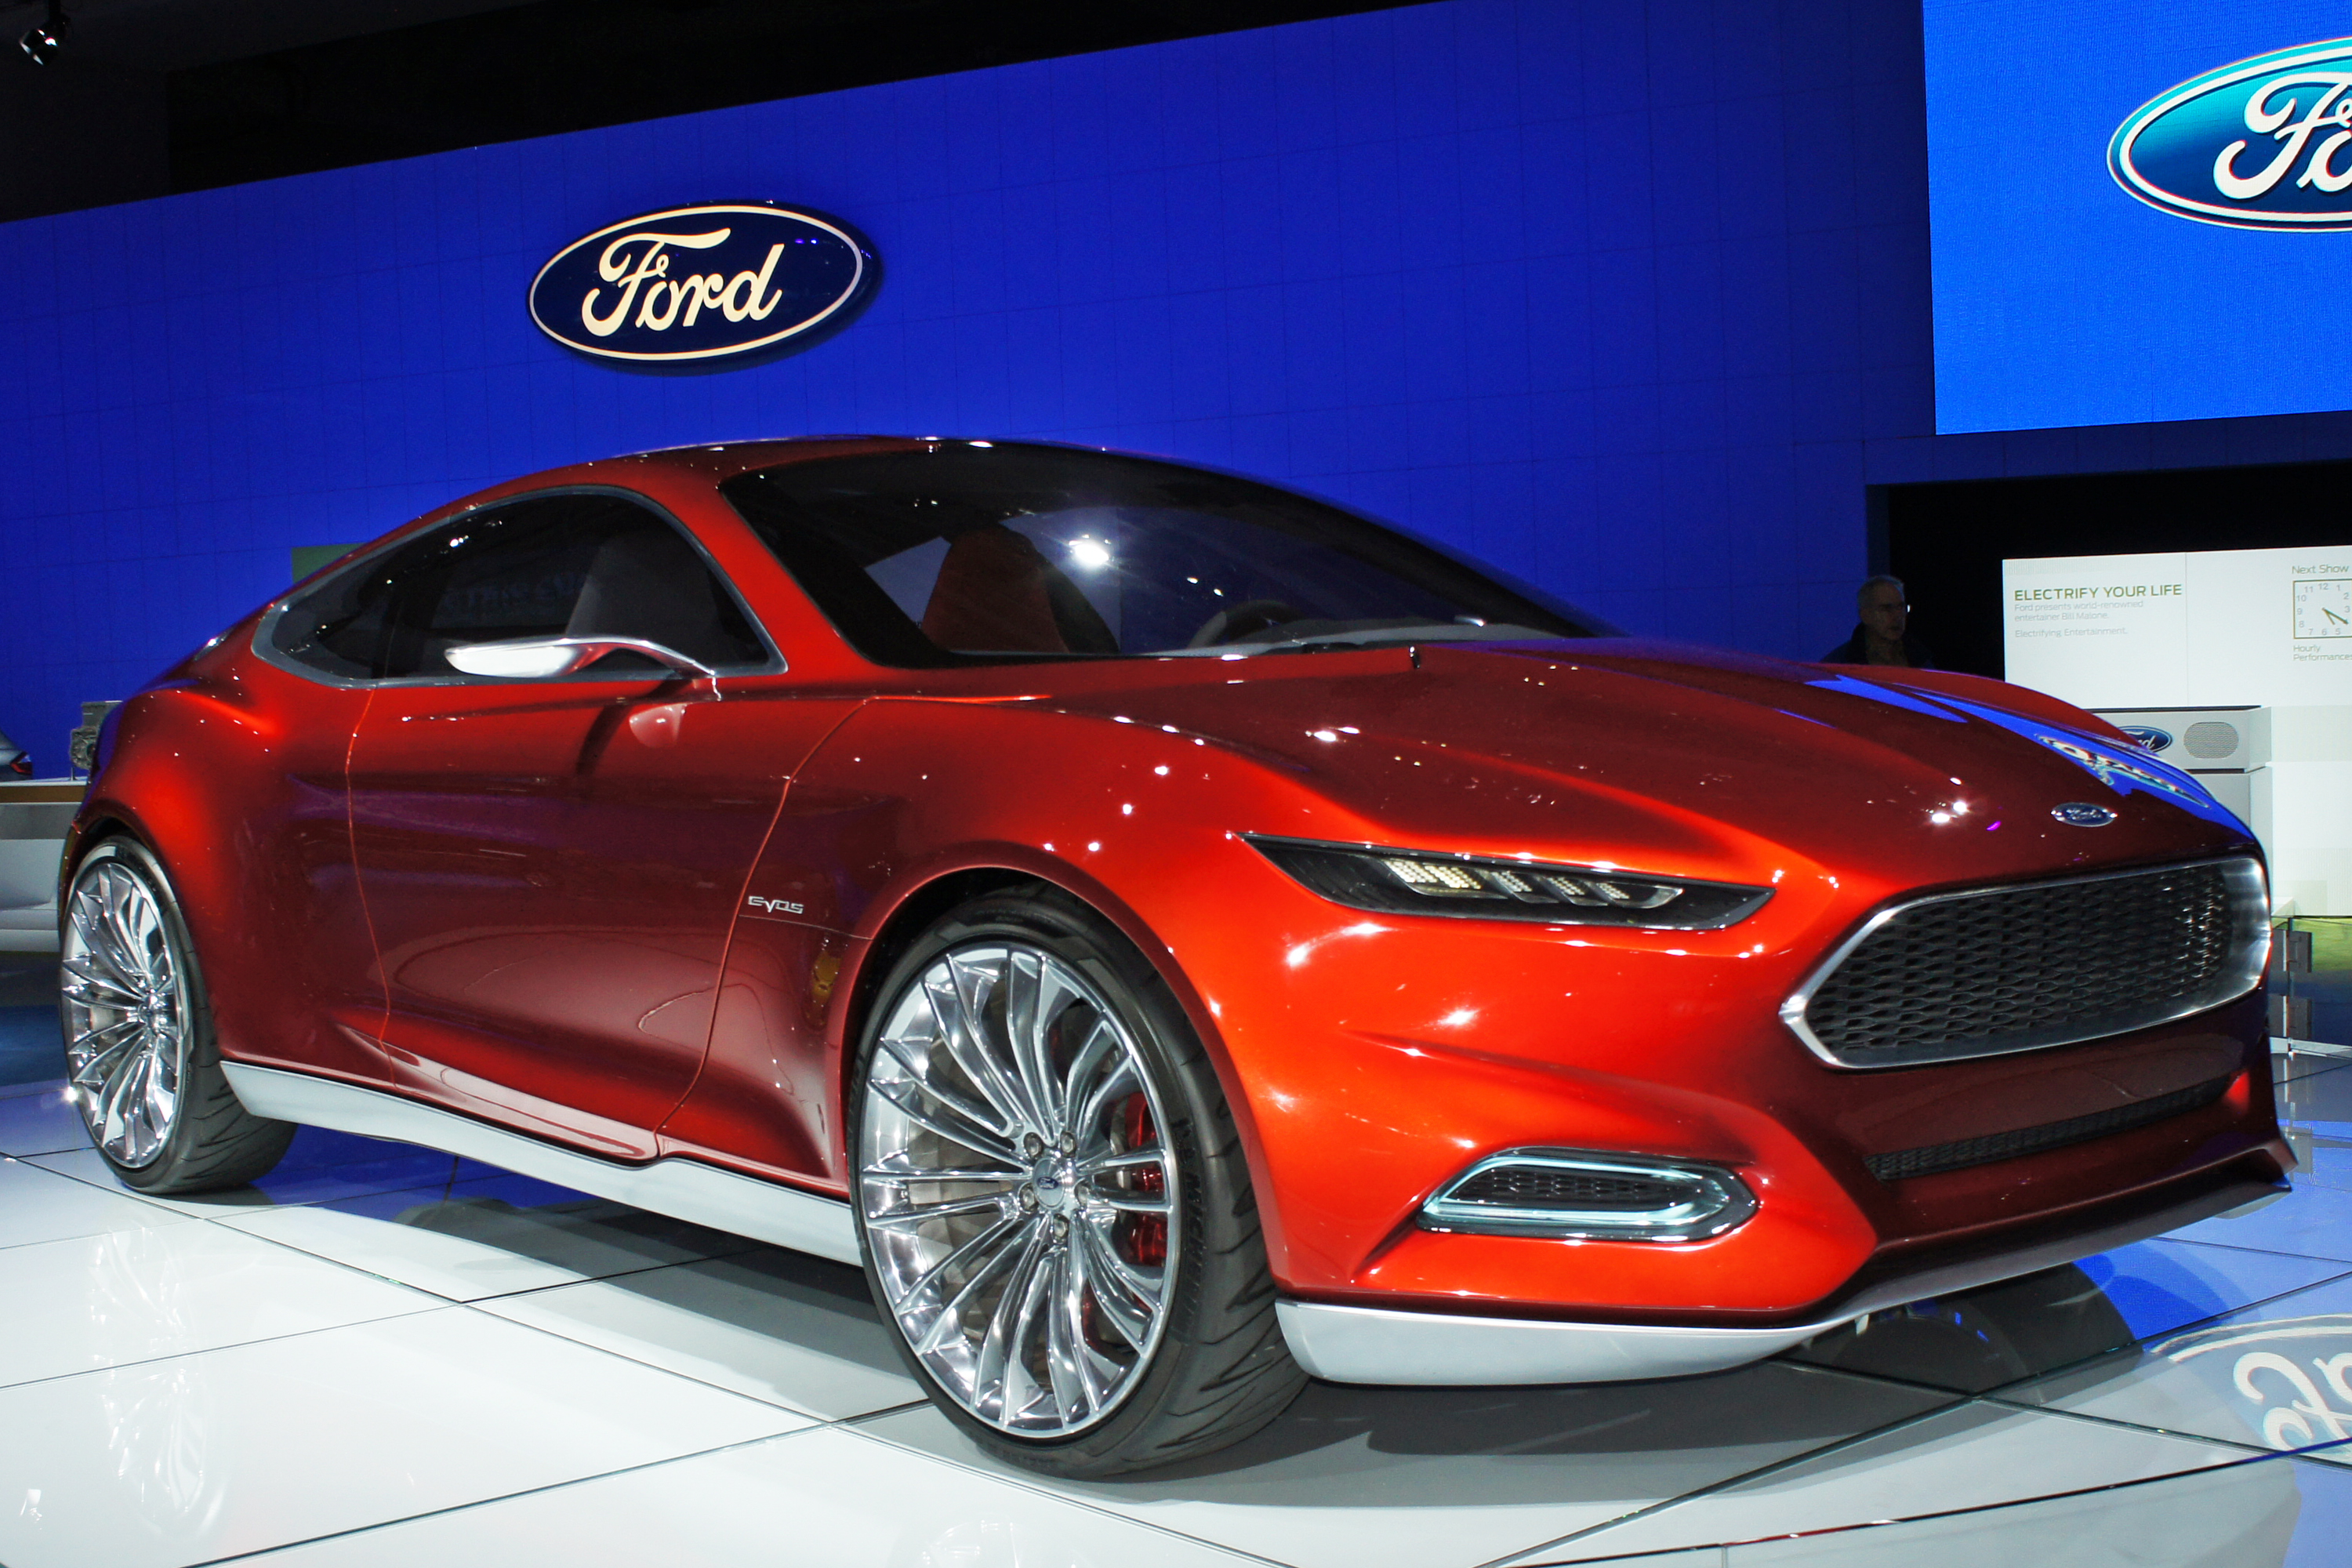 Ford #11